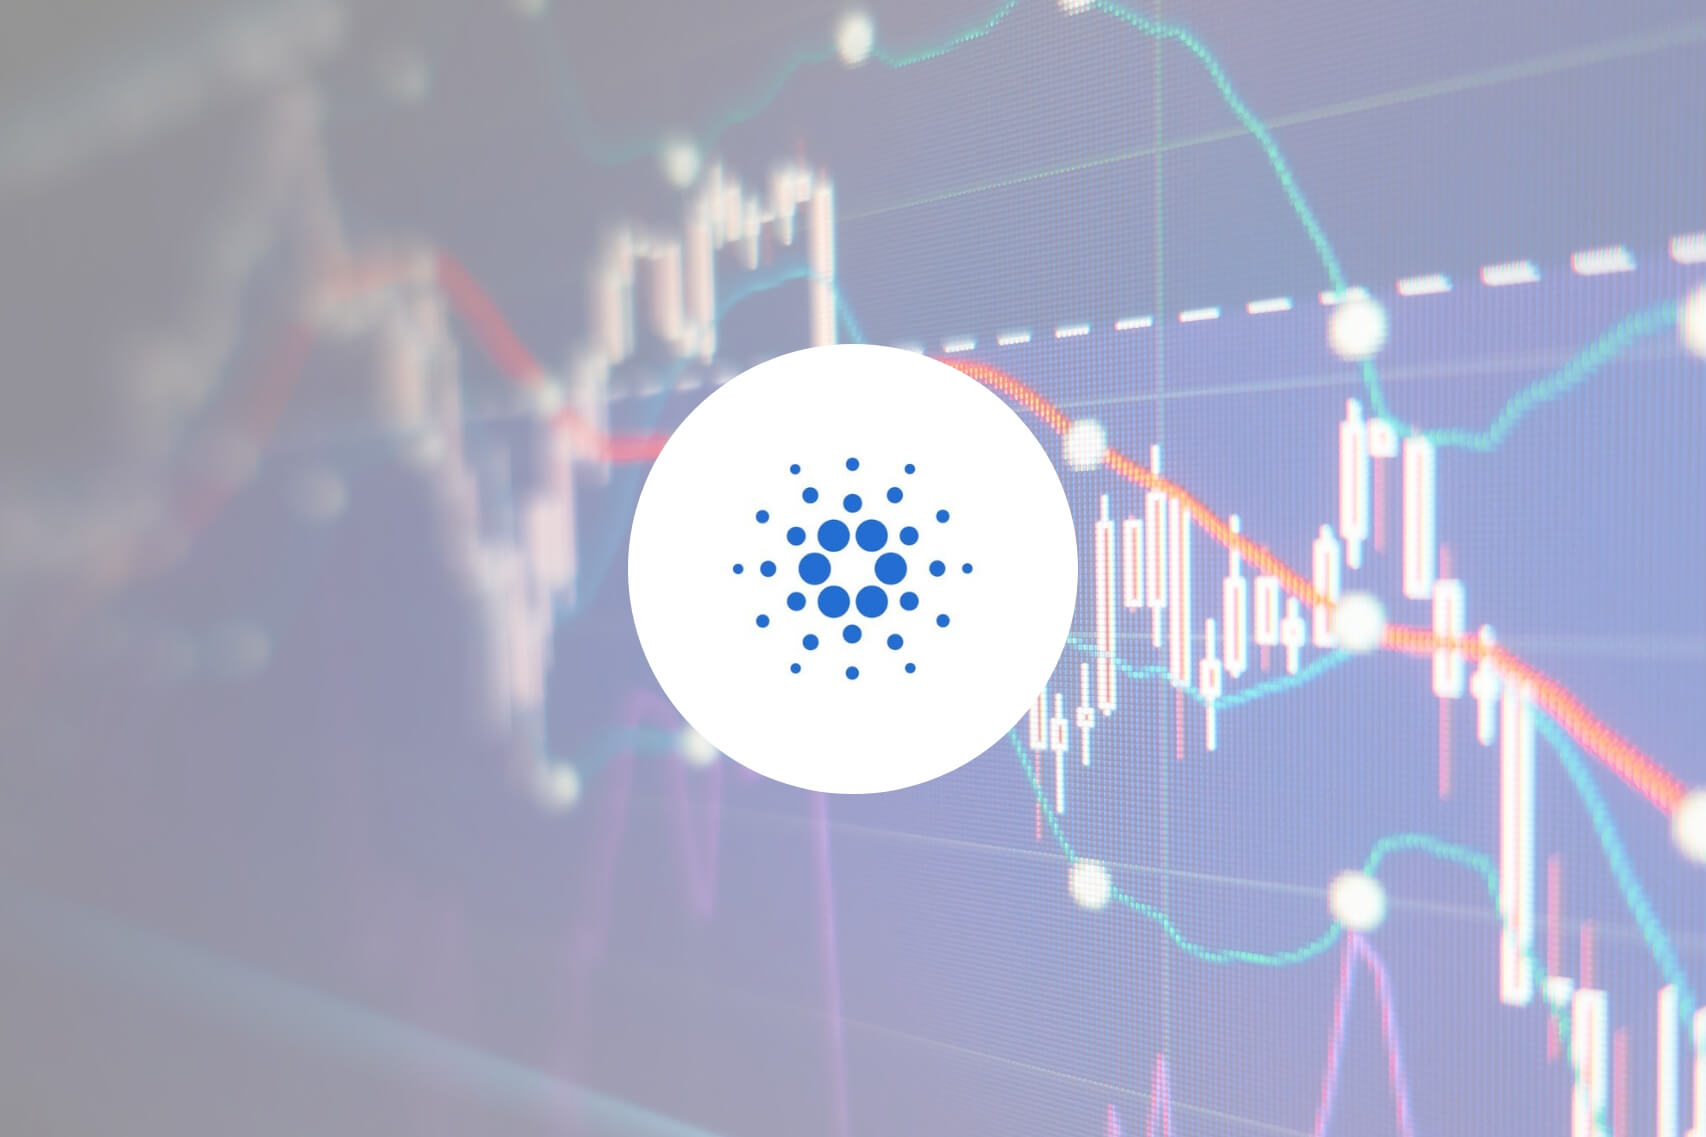 ADA price analysis